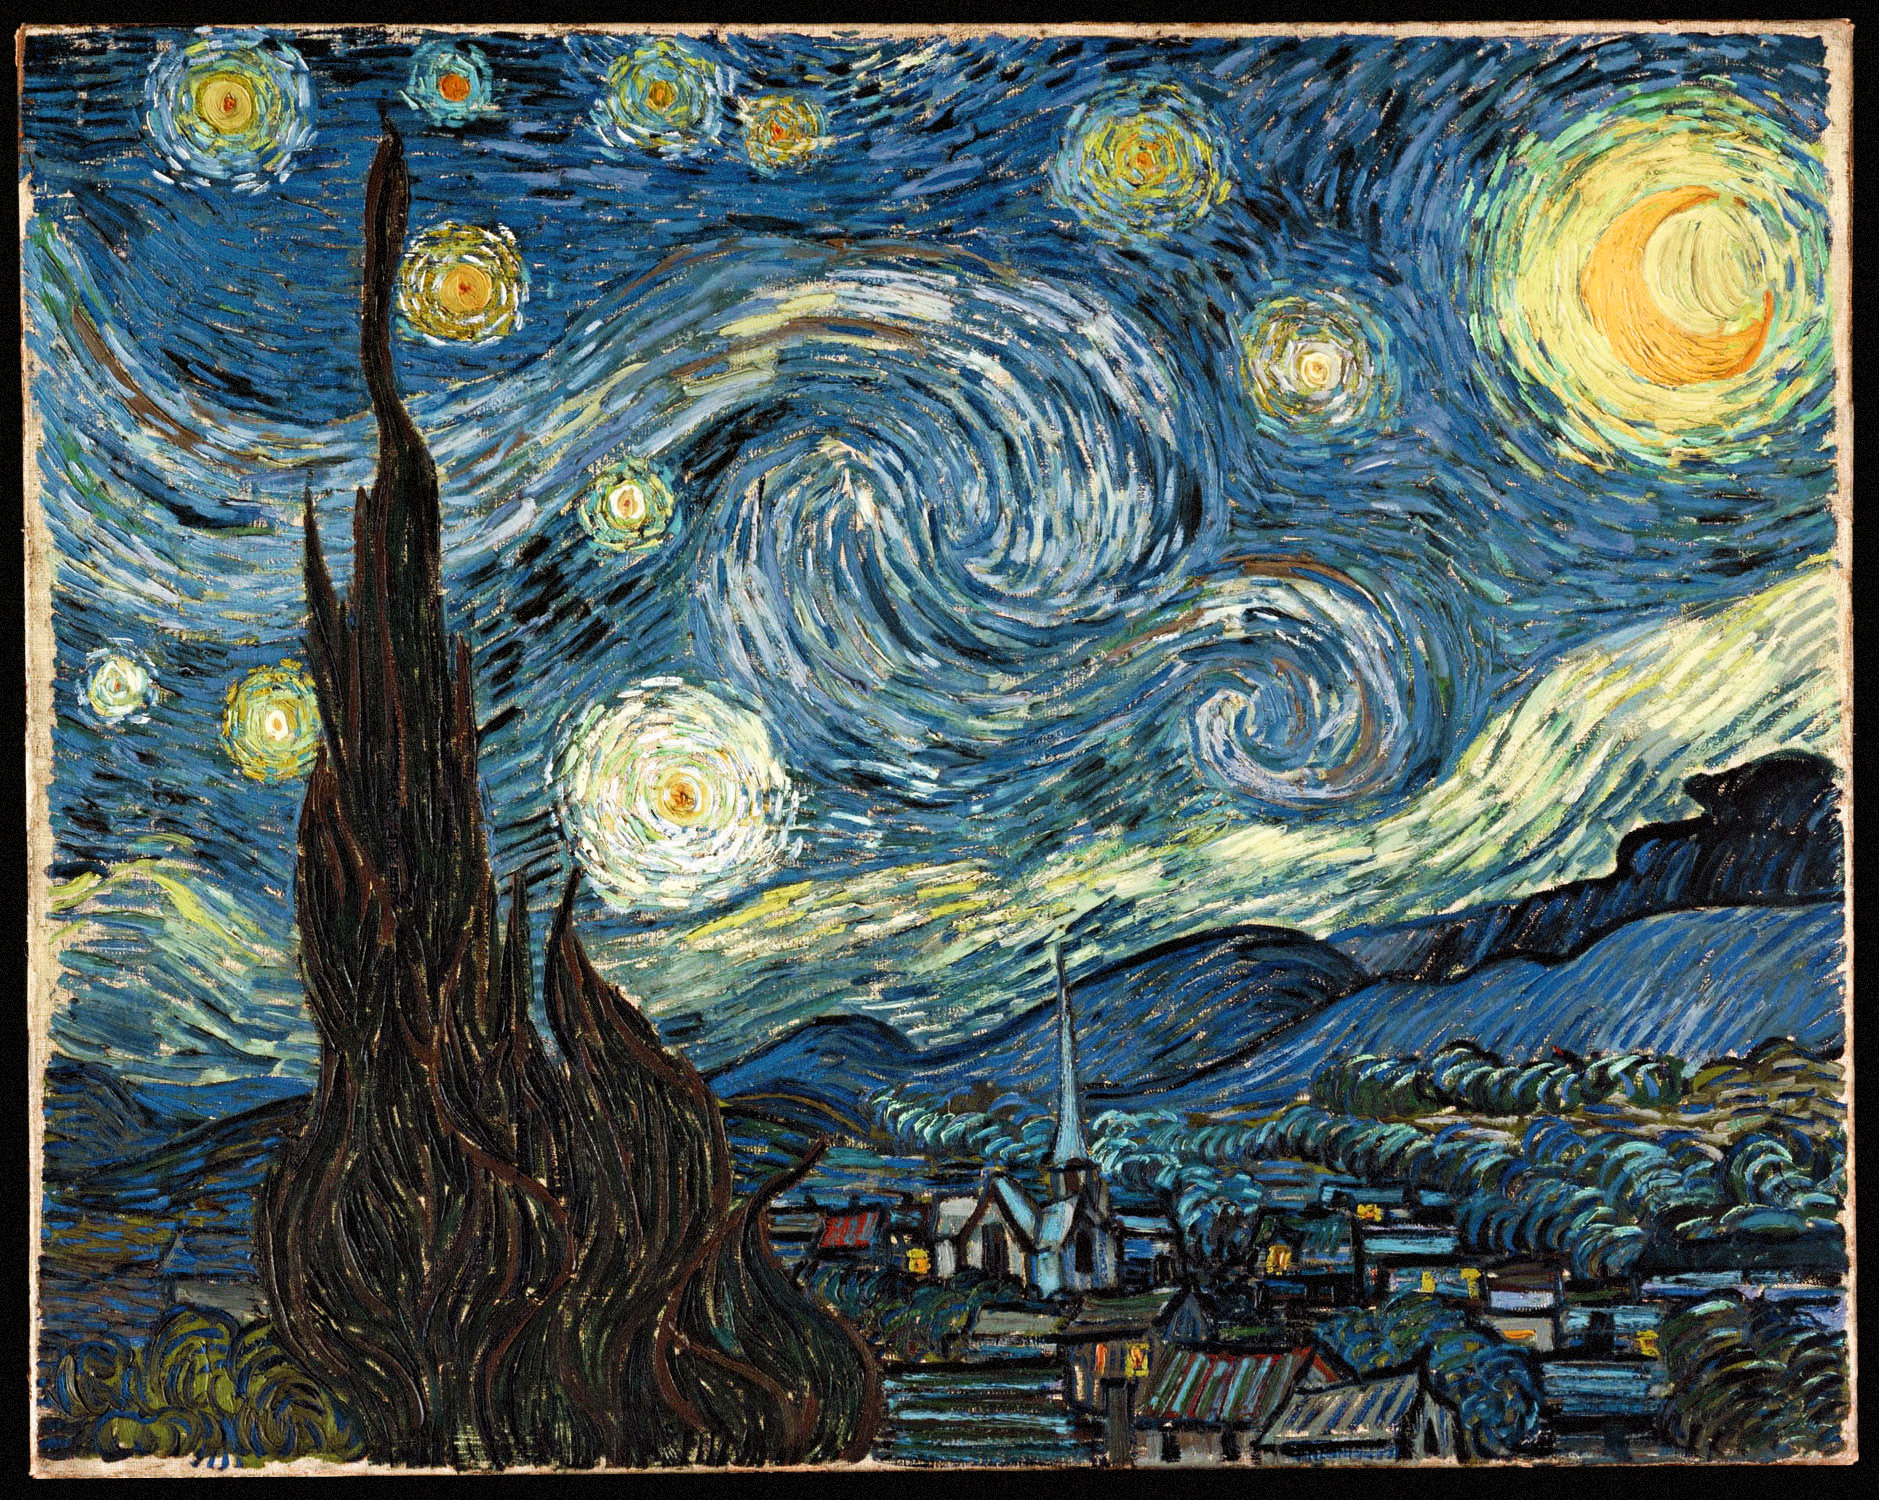 File:VanGogh-starry night edit.jpg - Wikimedia Commons